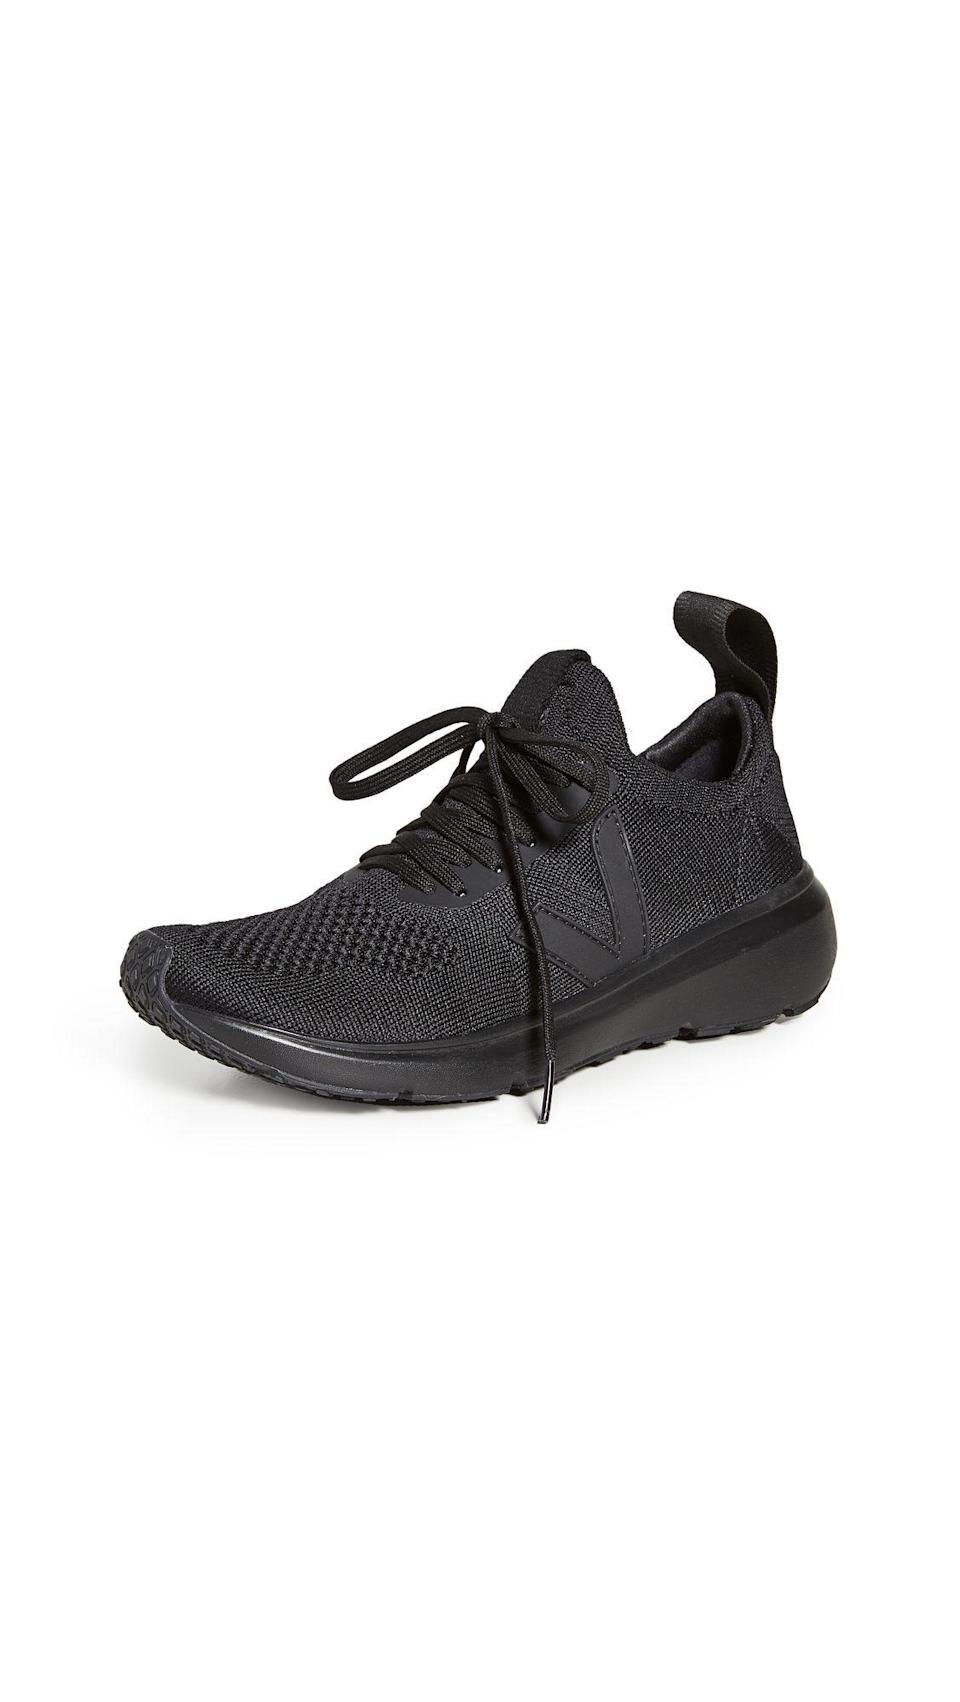 """<p><strong>Veja</strong></p><p>shopbop.com</p><p><a href=""""https://go.redirectingat.com?id=74968X1596630&url=https%3A%2F%2Fwww.shopbop.com%2Frick-owens-running-style-sneakers%2Fvp%2Fv%3D1%2F1501647224.htm&sref=https%3A%2F%2Fwww.elle.com%2Ffashion%2Fshopping%2Fg36080635%2Fshopbop-spring-sale%2F"""" rel=""""nofollow noopener"""" target=""""_blank"""" data-ylk=""""slk:Shop Now"""" class=""""link rapid-noclick-resp"""">Shop Now</a></p><p><strong><del>$203</del> $173 (15% off)</strong></p><p>Originally $290, these running sneakers from Rick Owens' latest collaboration with fair trade, eco-friendly brand Veja are a splurge you can feel good about. The shoes are made from 45 percent bio-based materials with an L-FOAM cushion made from 50 percent Brazilian natural rubber, and a 3D knit made from recycled plastic bottles. </p>"""